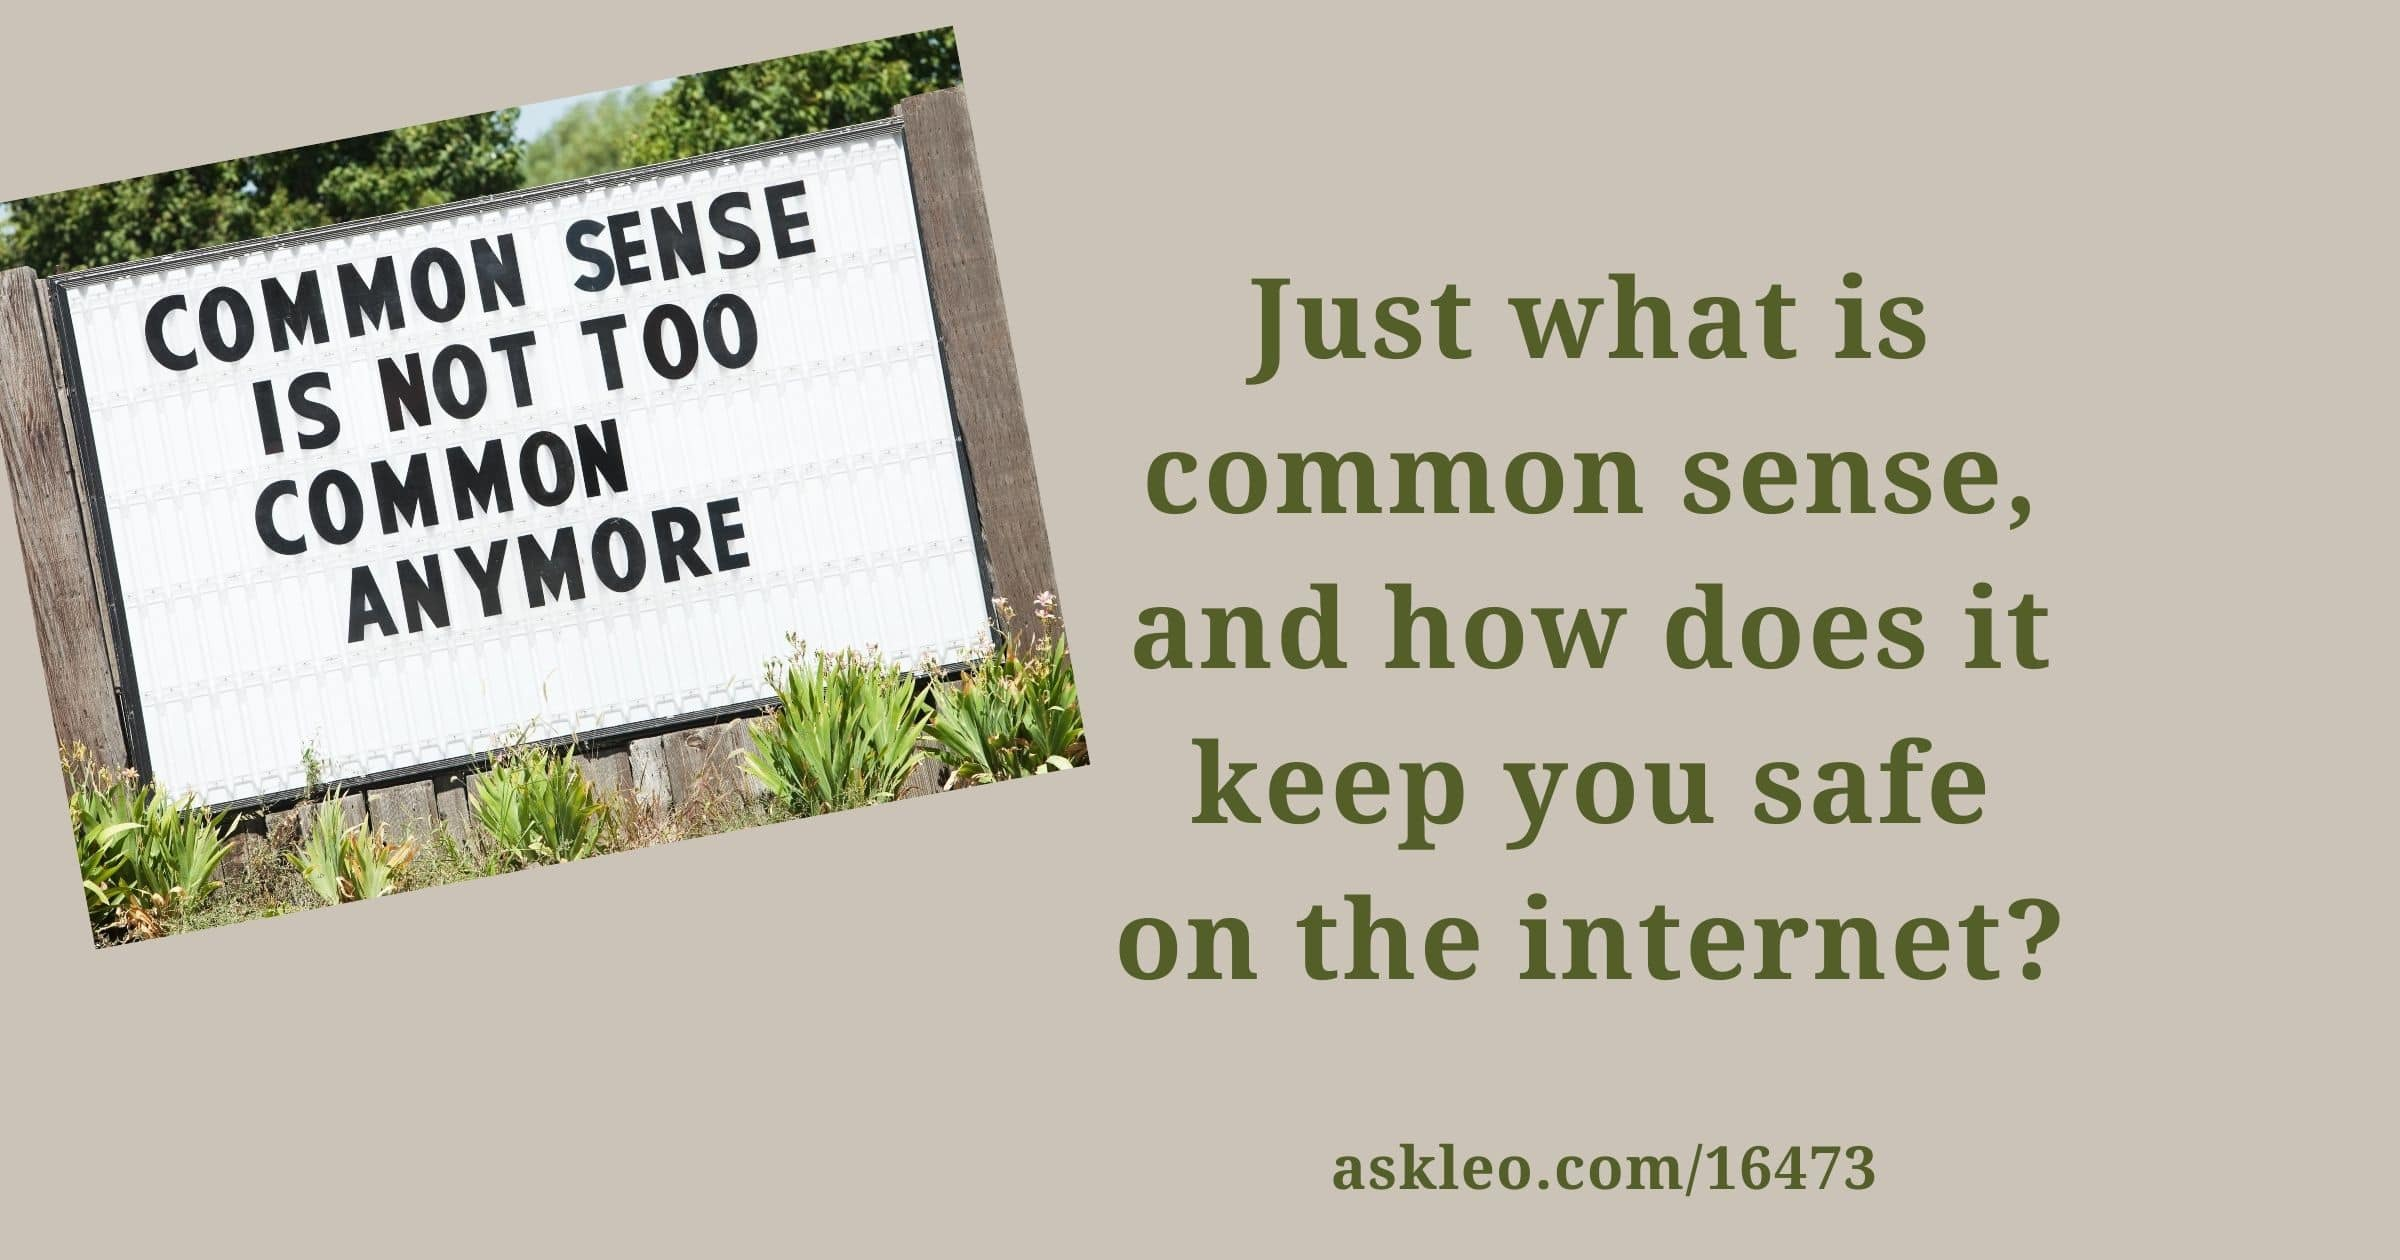 Just What Is Common Sense?